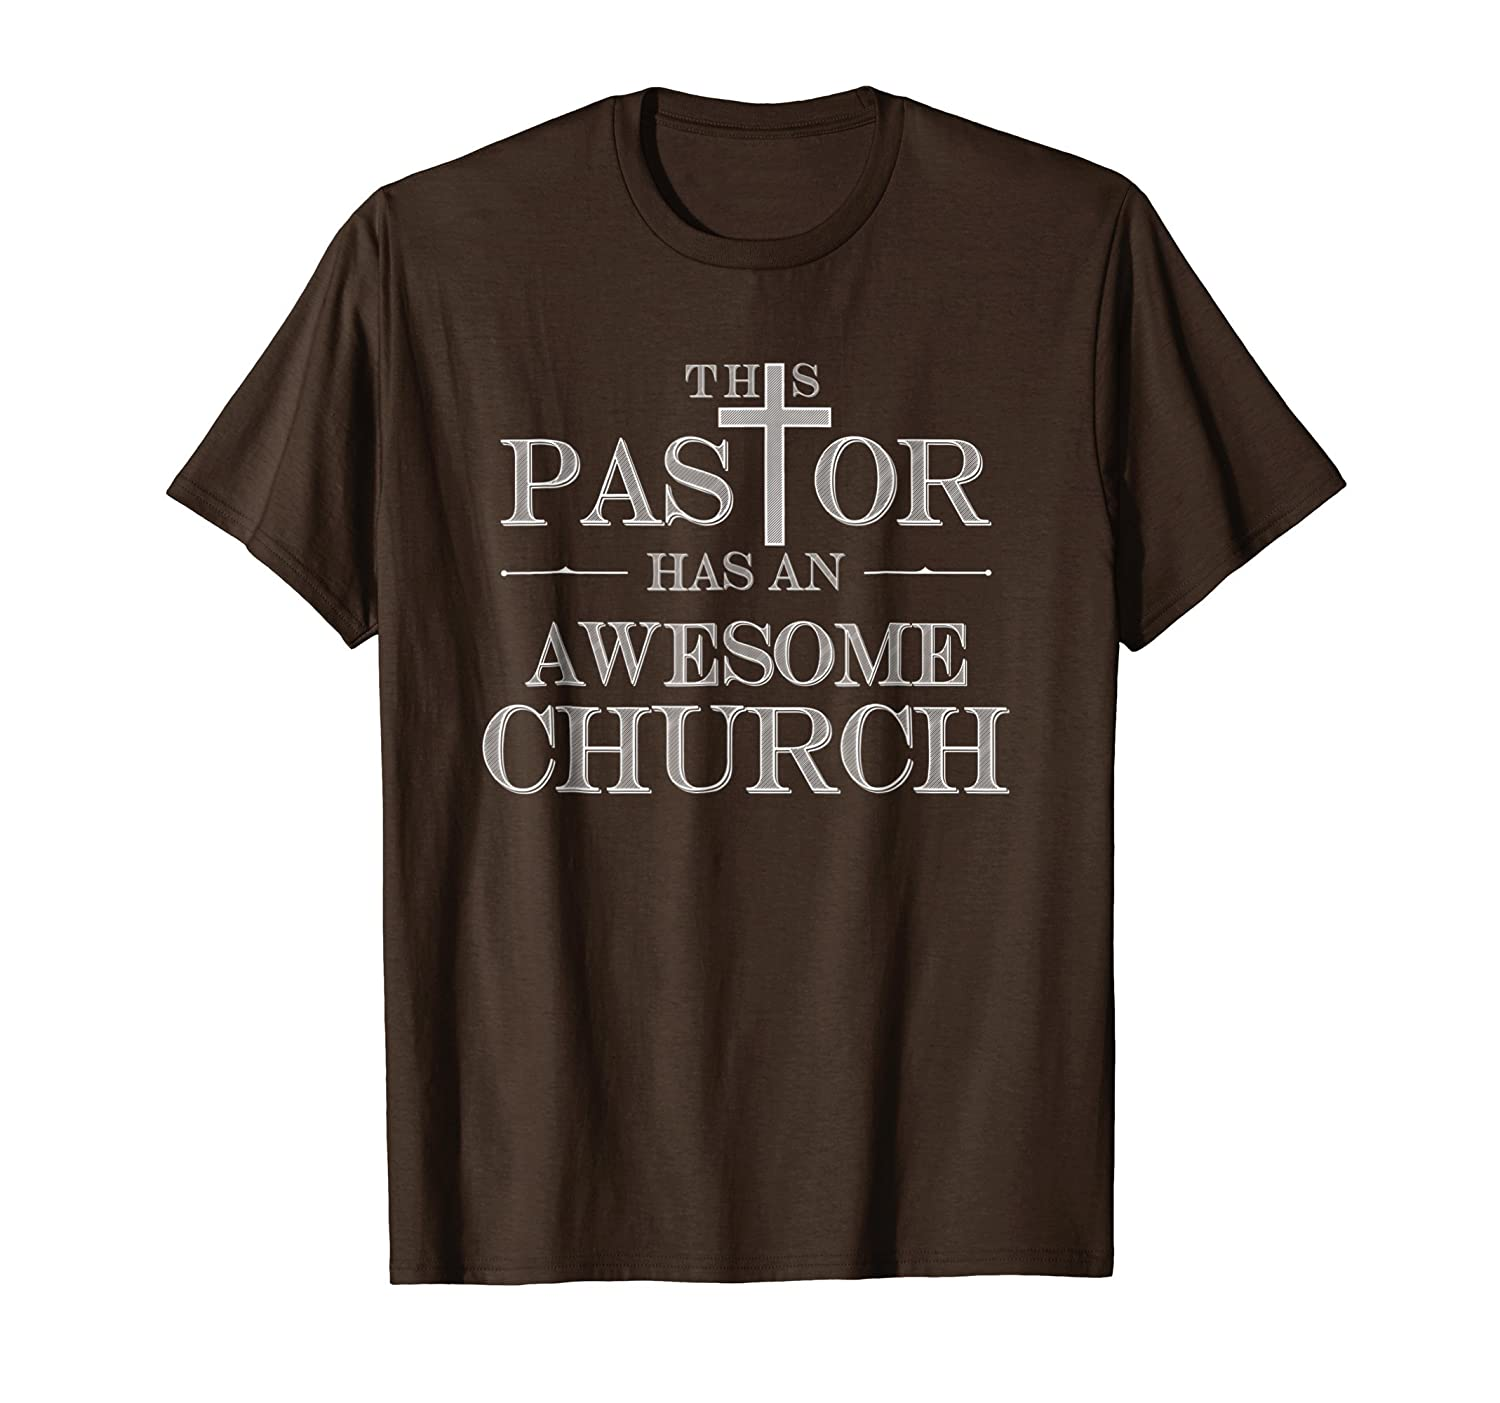 Funny Pastor T Shirt Awesome Church Perfect Gift For Pastors